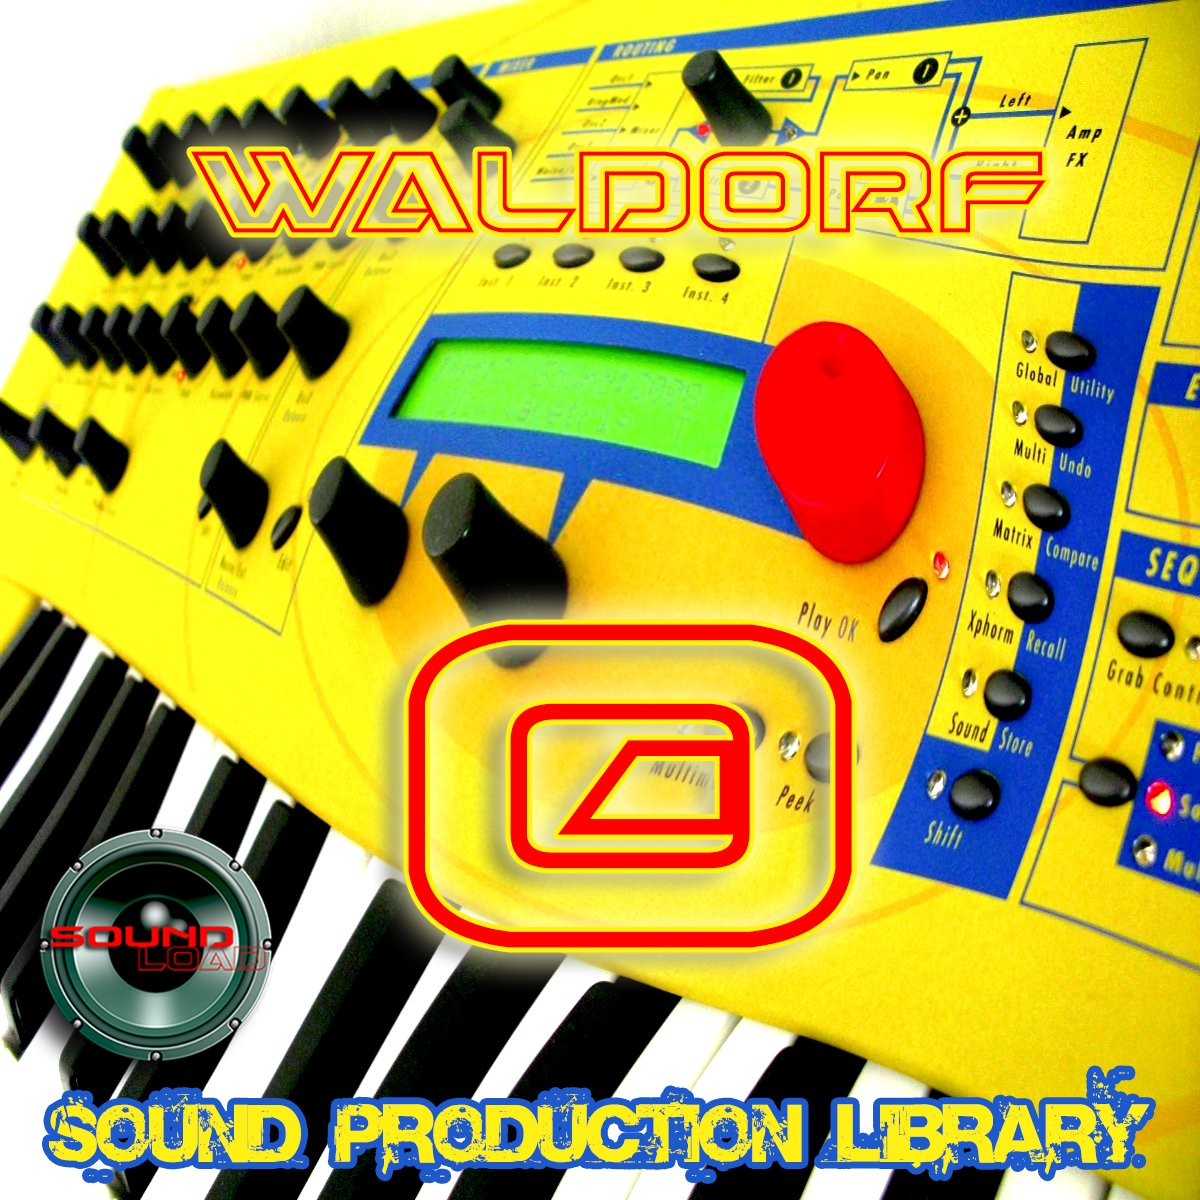 WALDORF Q - Large unique original 24bit WAVE/Kontakt Multi-Layer Samples Library. FREE USA Continental Shipping on DVD or download by SoundLoad (Image #1)